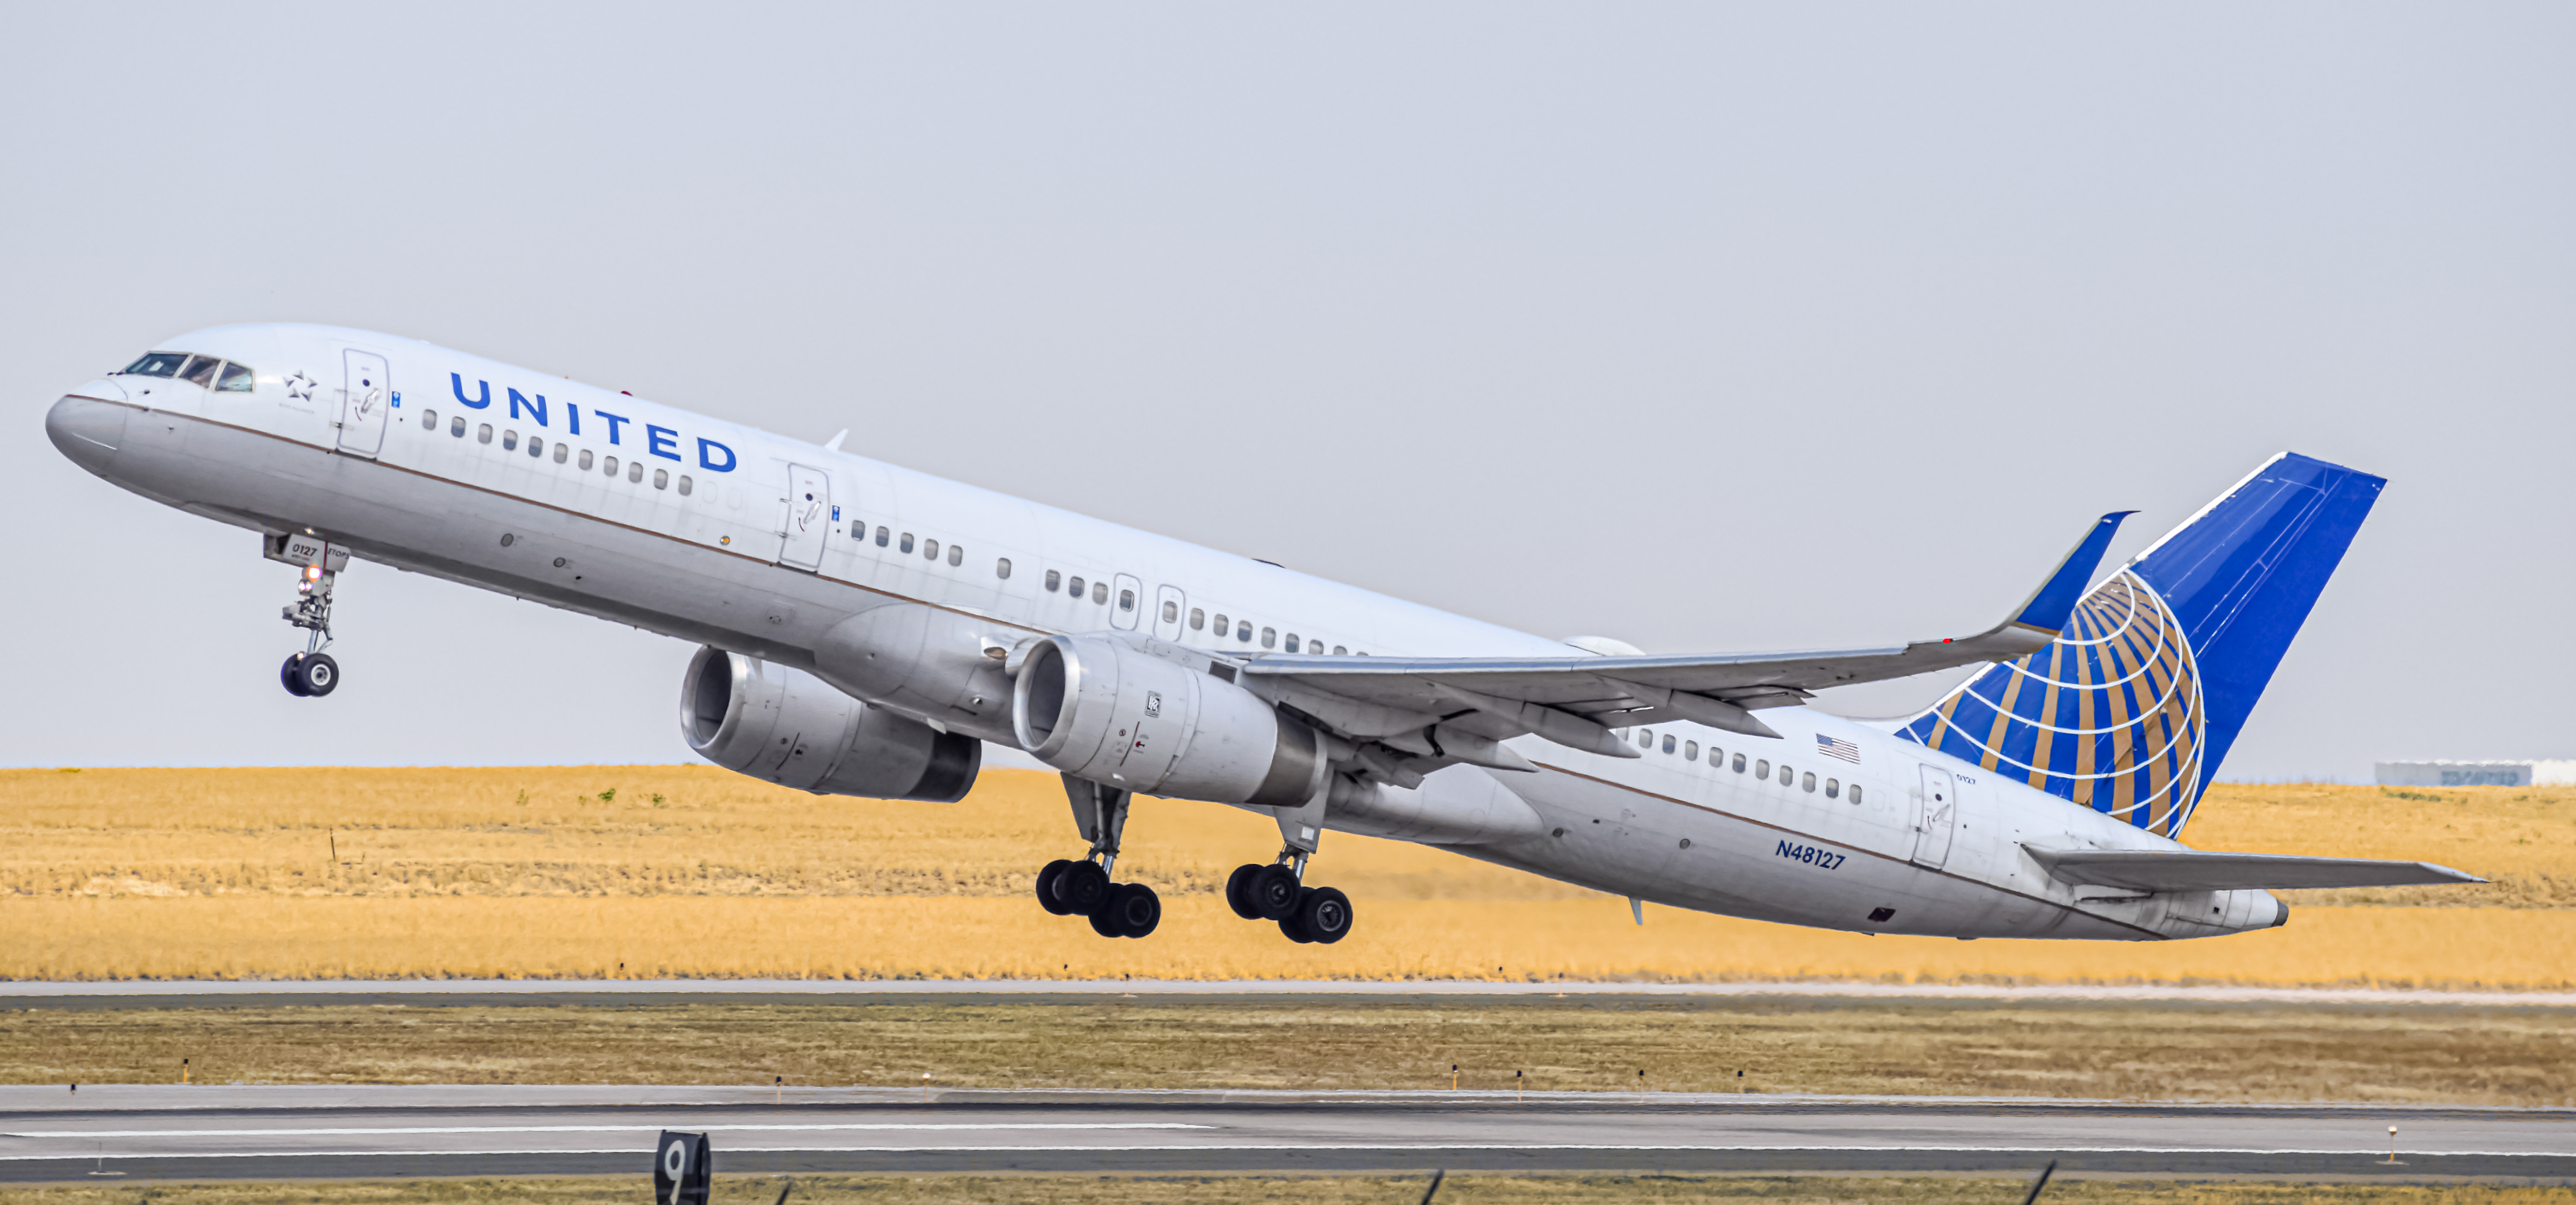 Photo of N48127 - United Airlines Boeing 757-200 at DEN